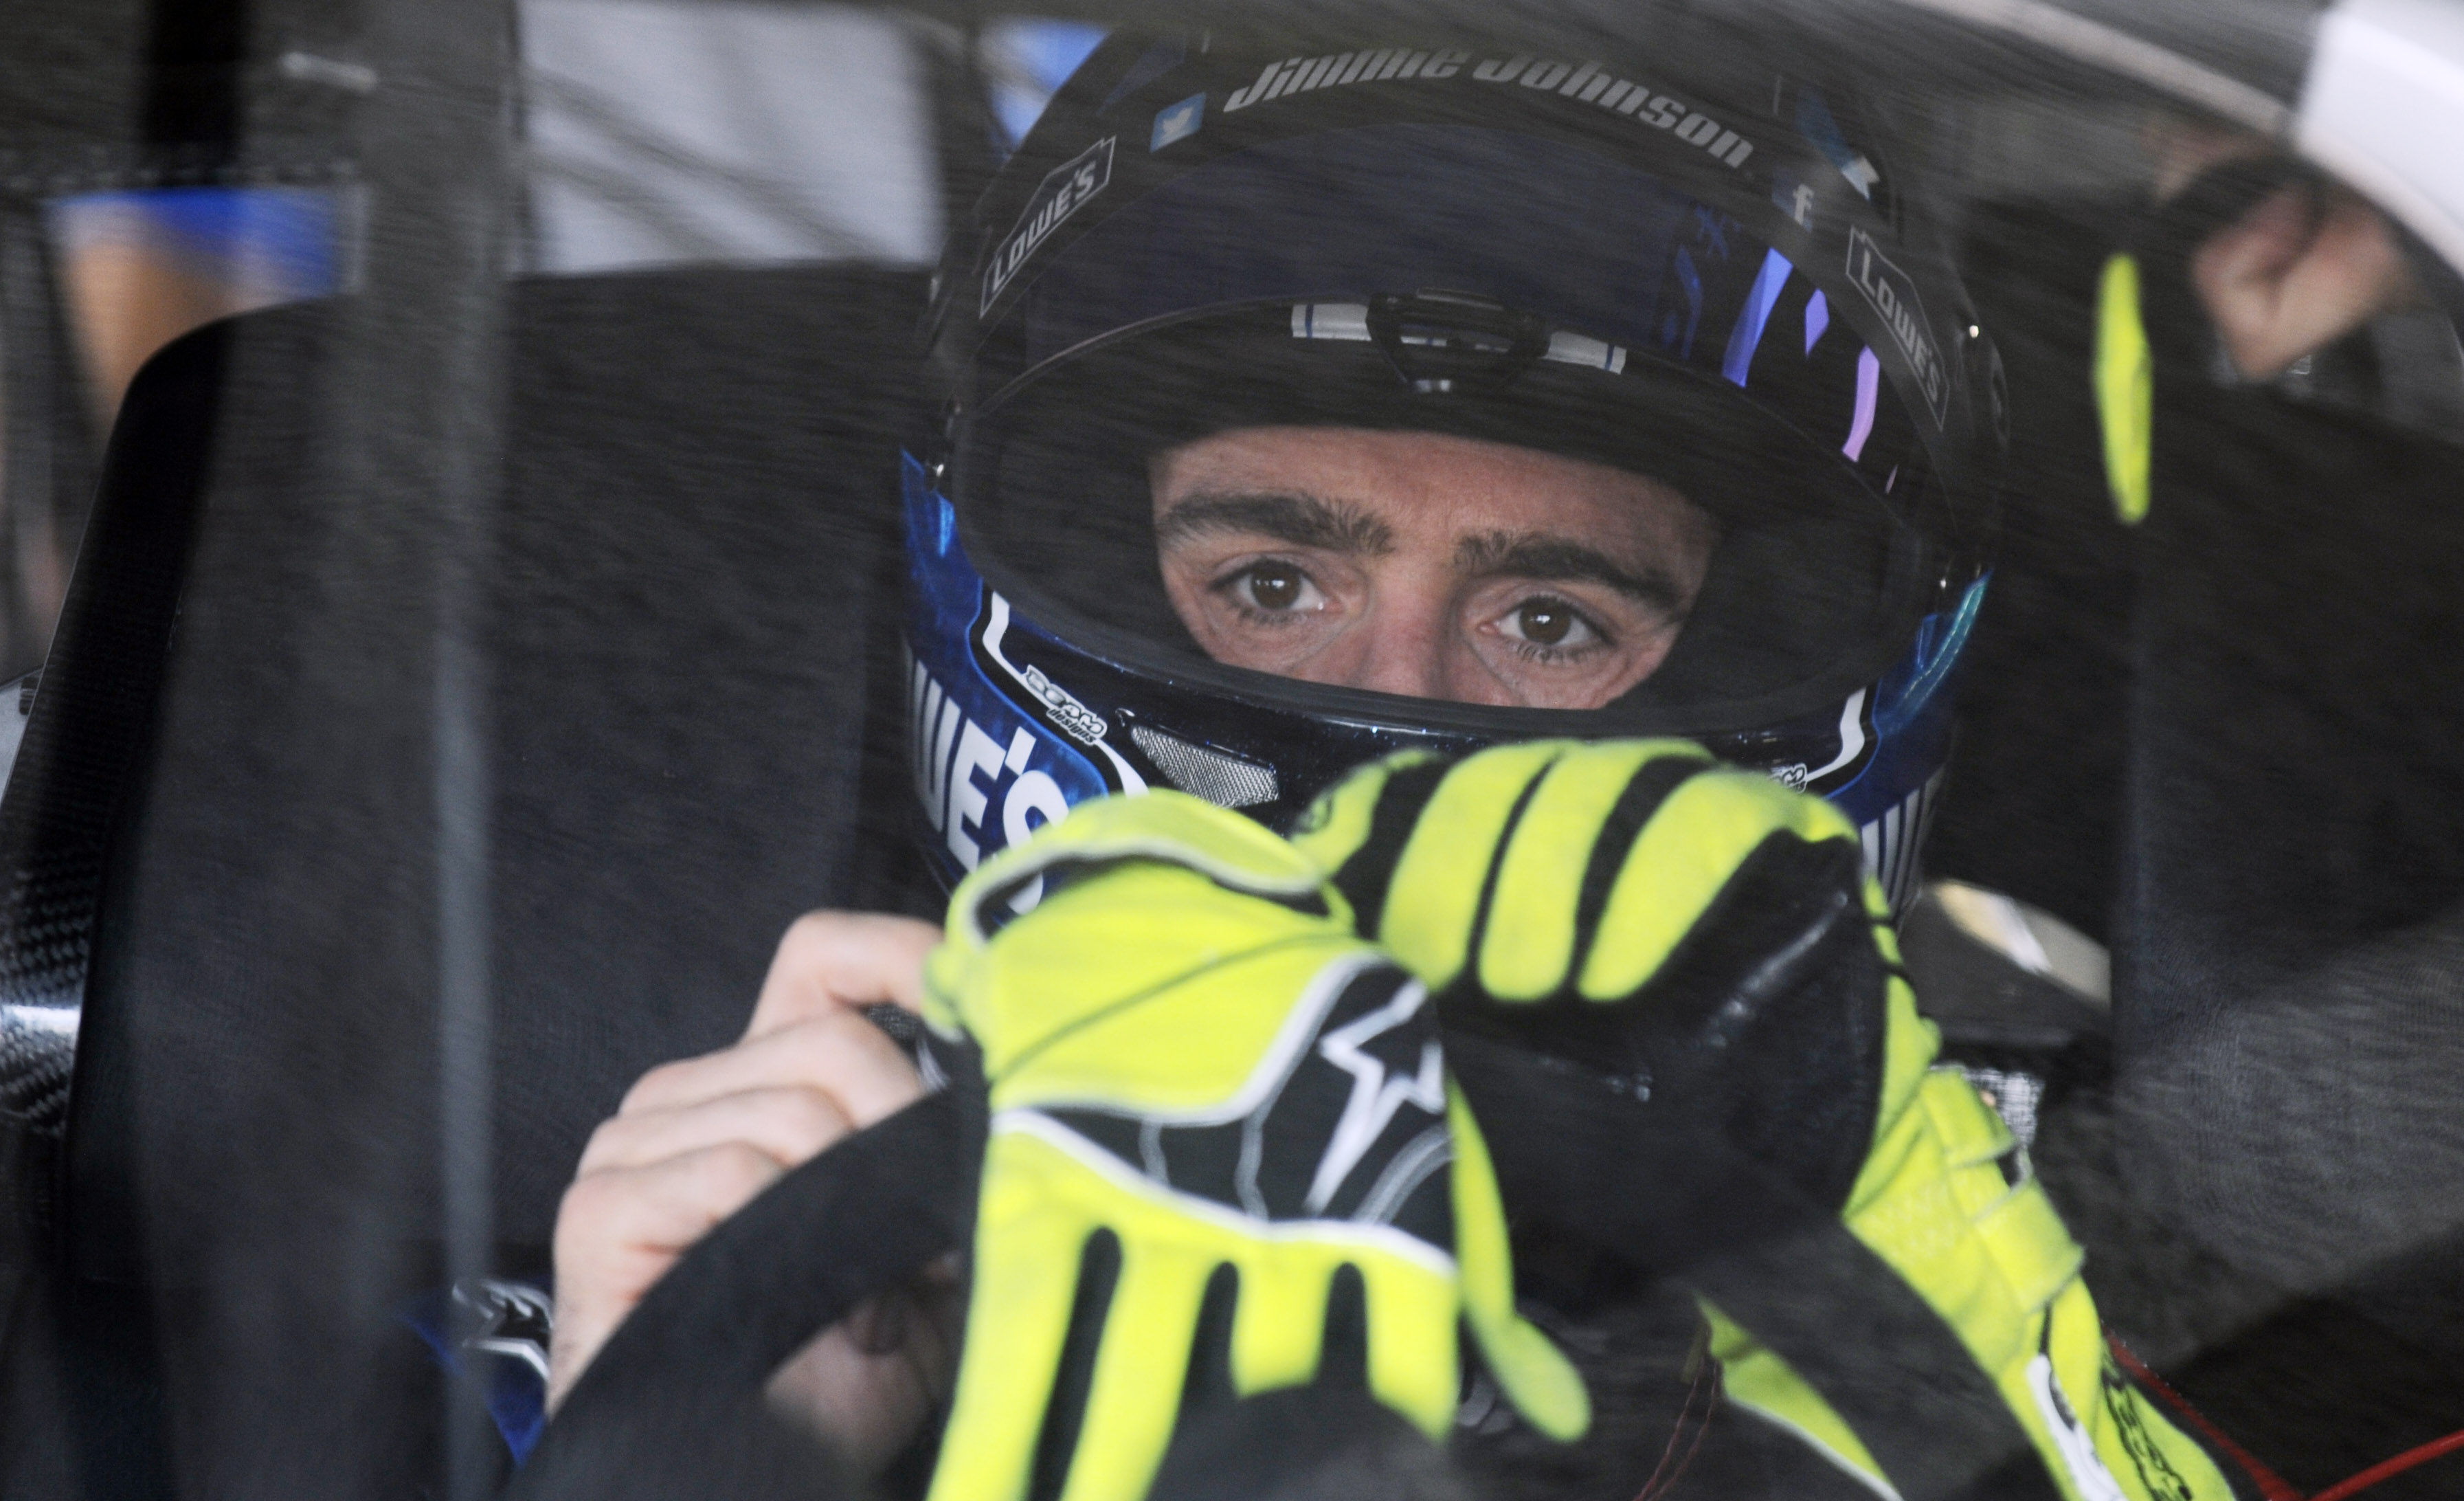 Jimmie Johnson puts on his gloves during practice for the Daytona 500. (USA TODAY Sports)